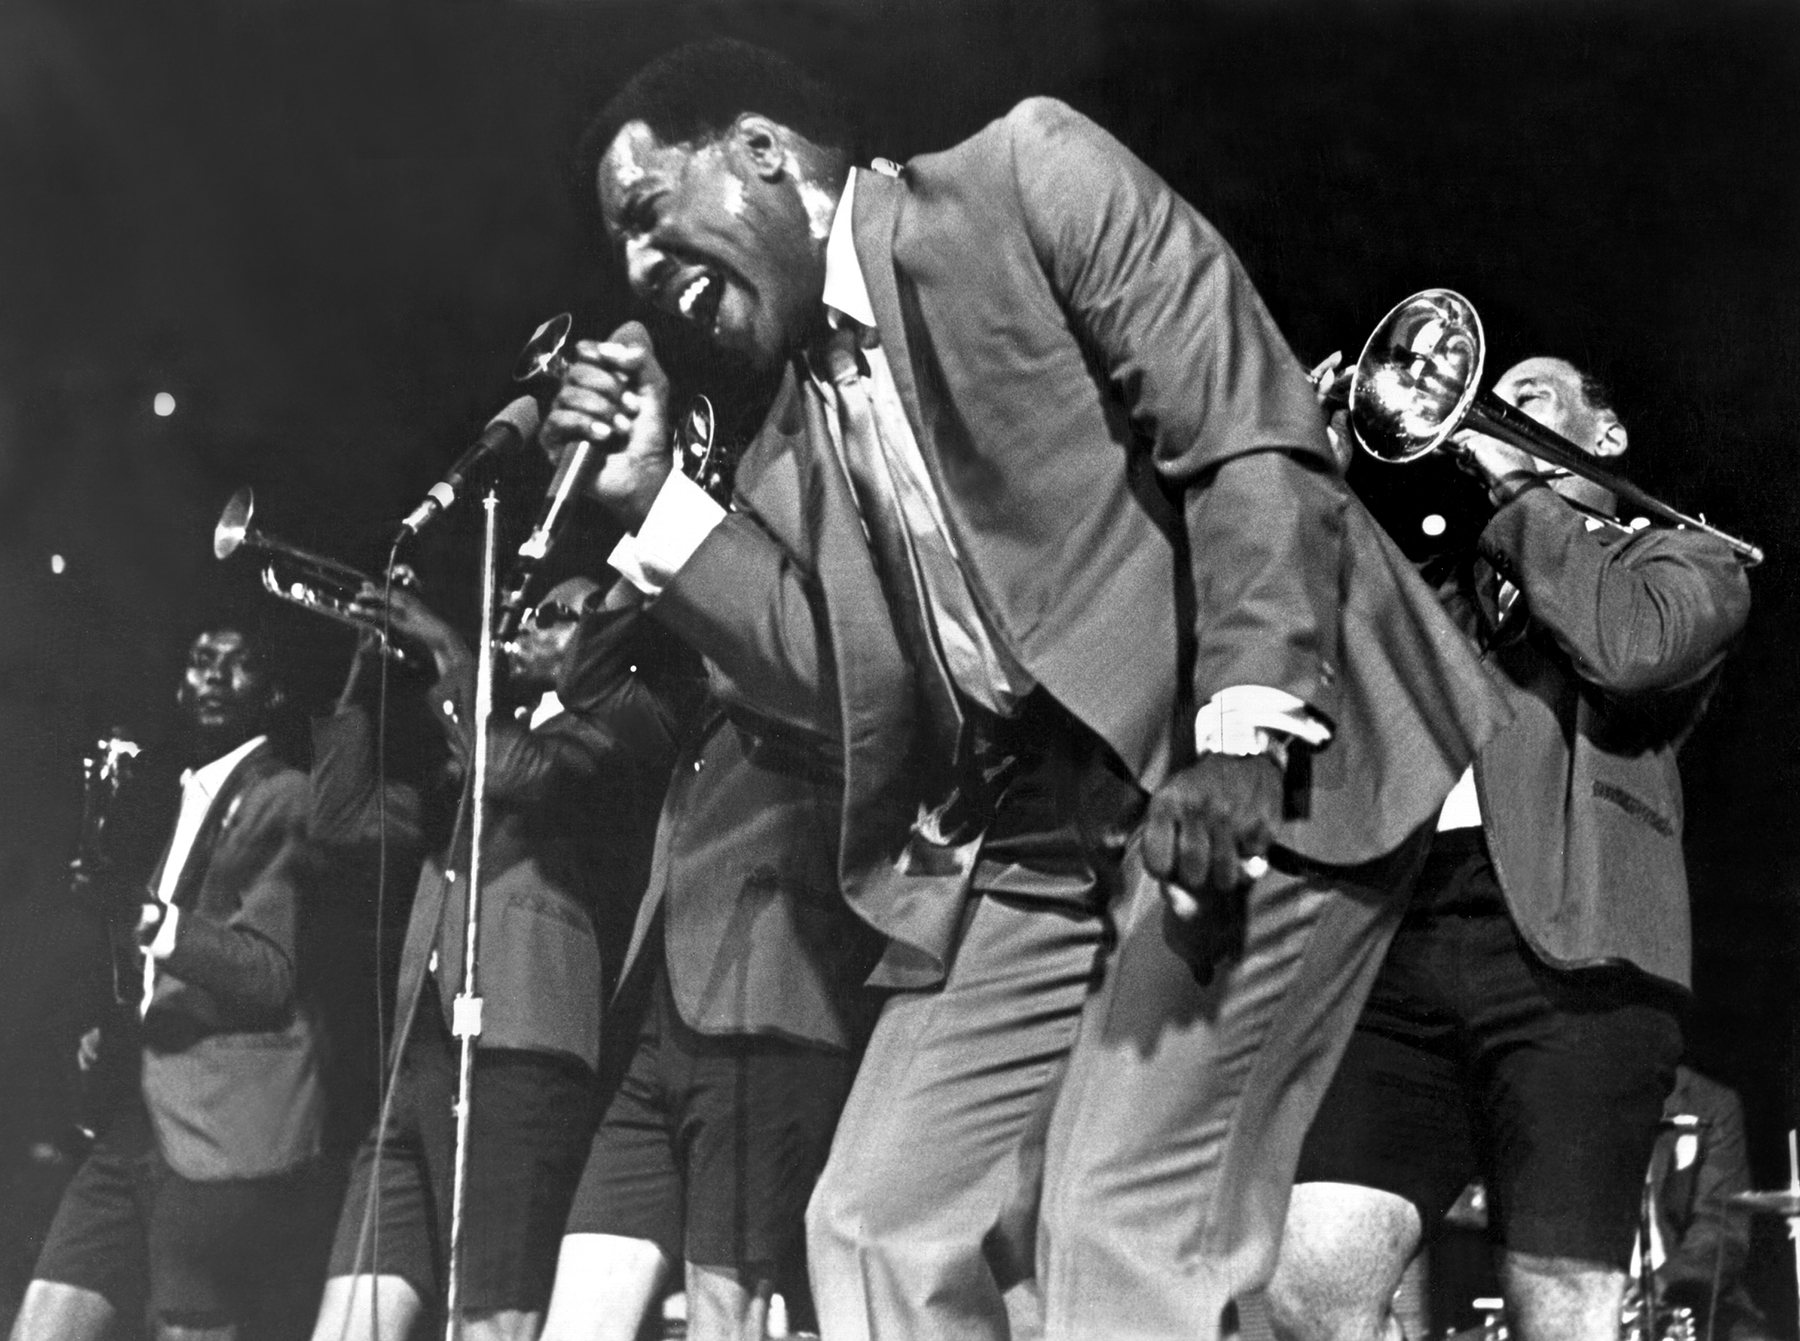 1967: Soul singer Otis Redding passionately sings with his horn section behind him as he performs onstage in 1967. (Photo by Michael Ochs Archives/Getty Images)